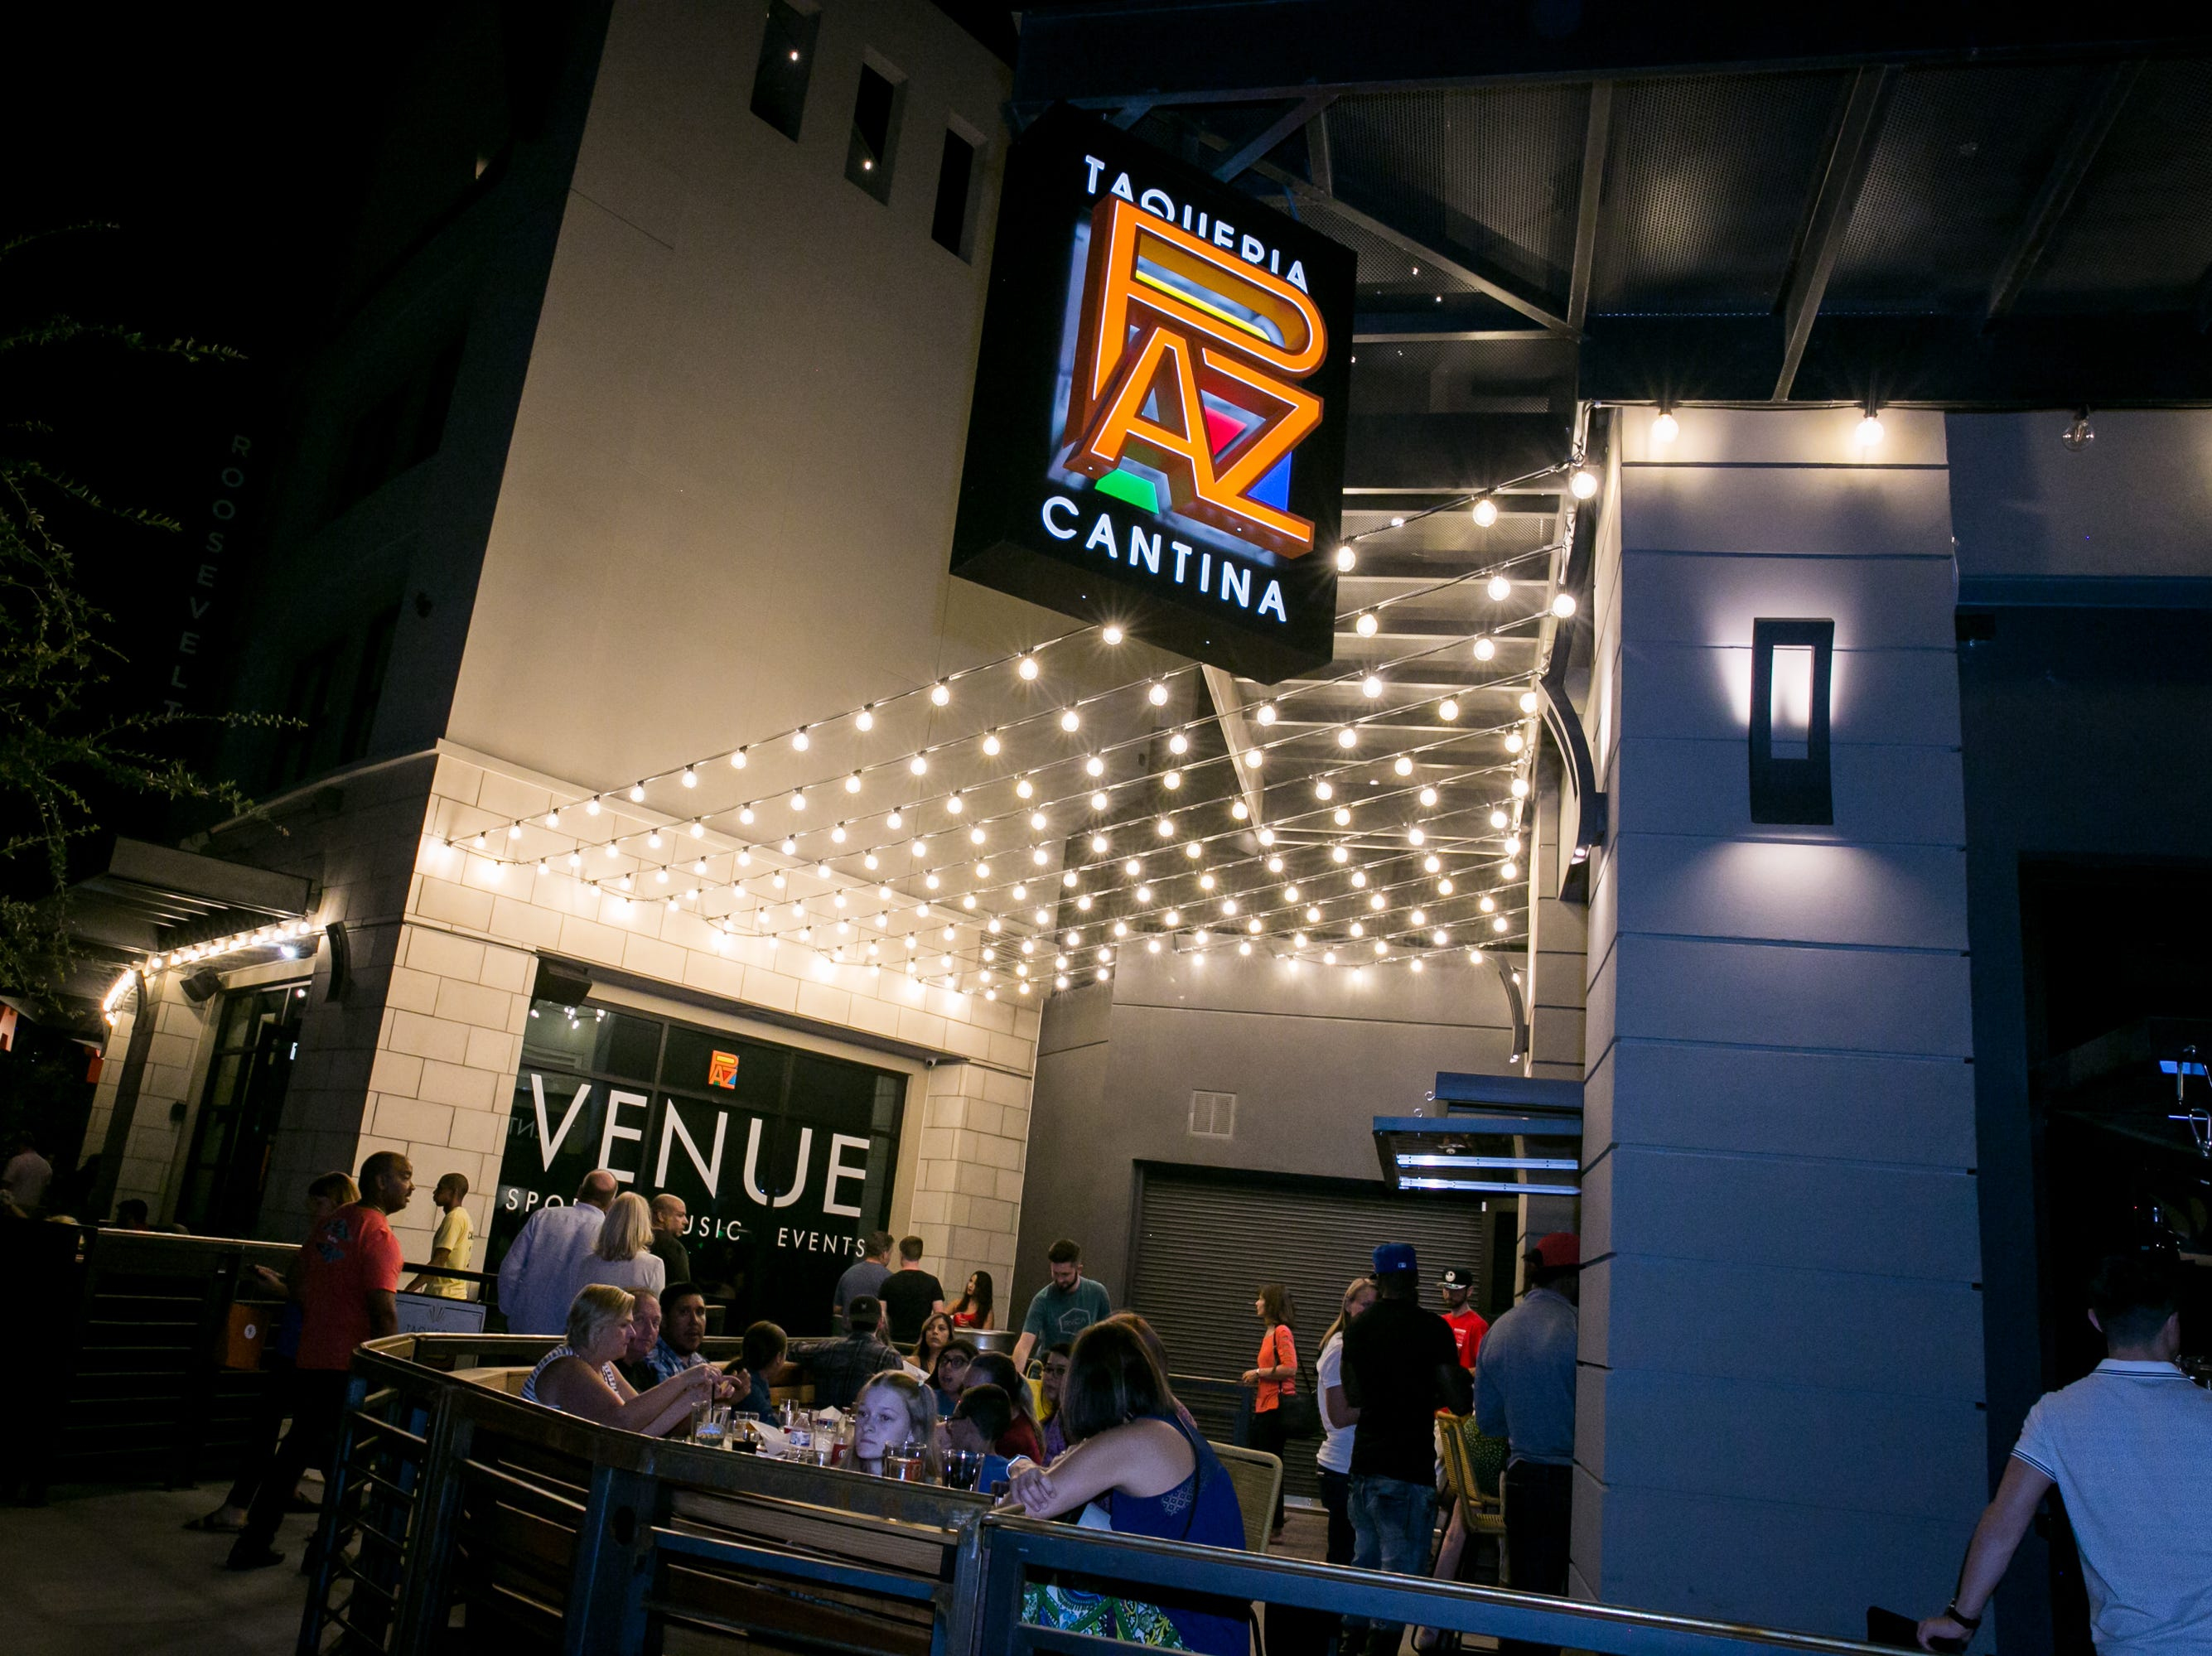 Paz Cantina was a fun hang out spot during First Friday on October 5, 2018.